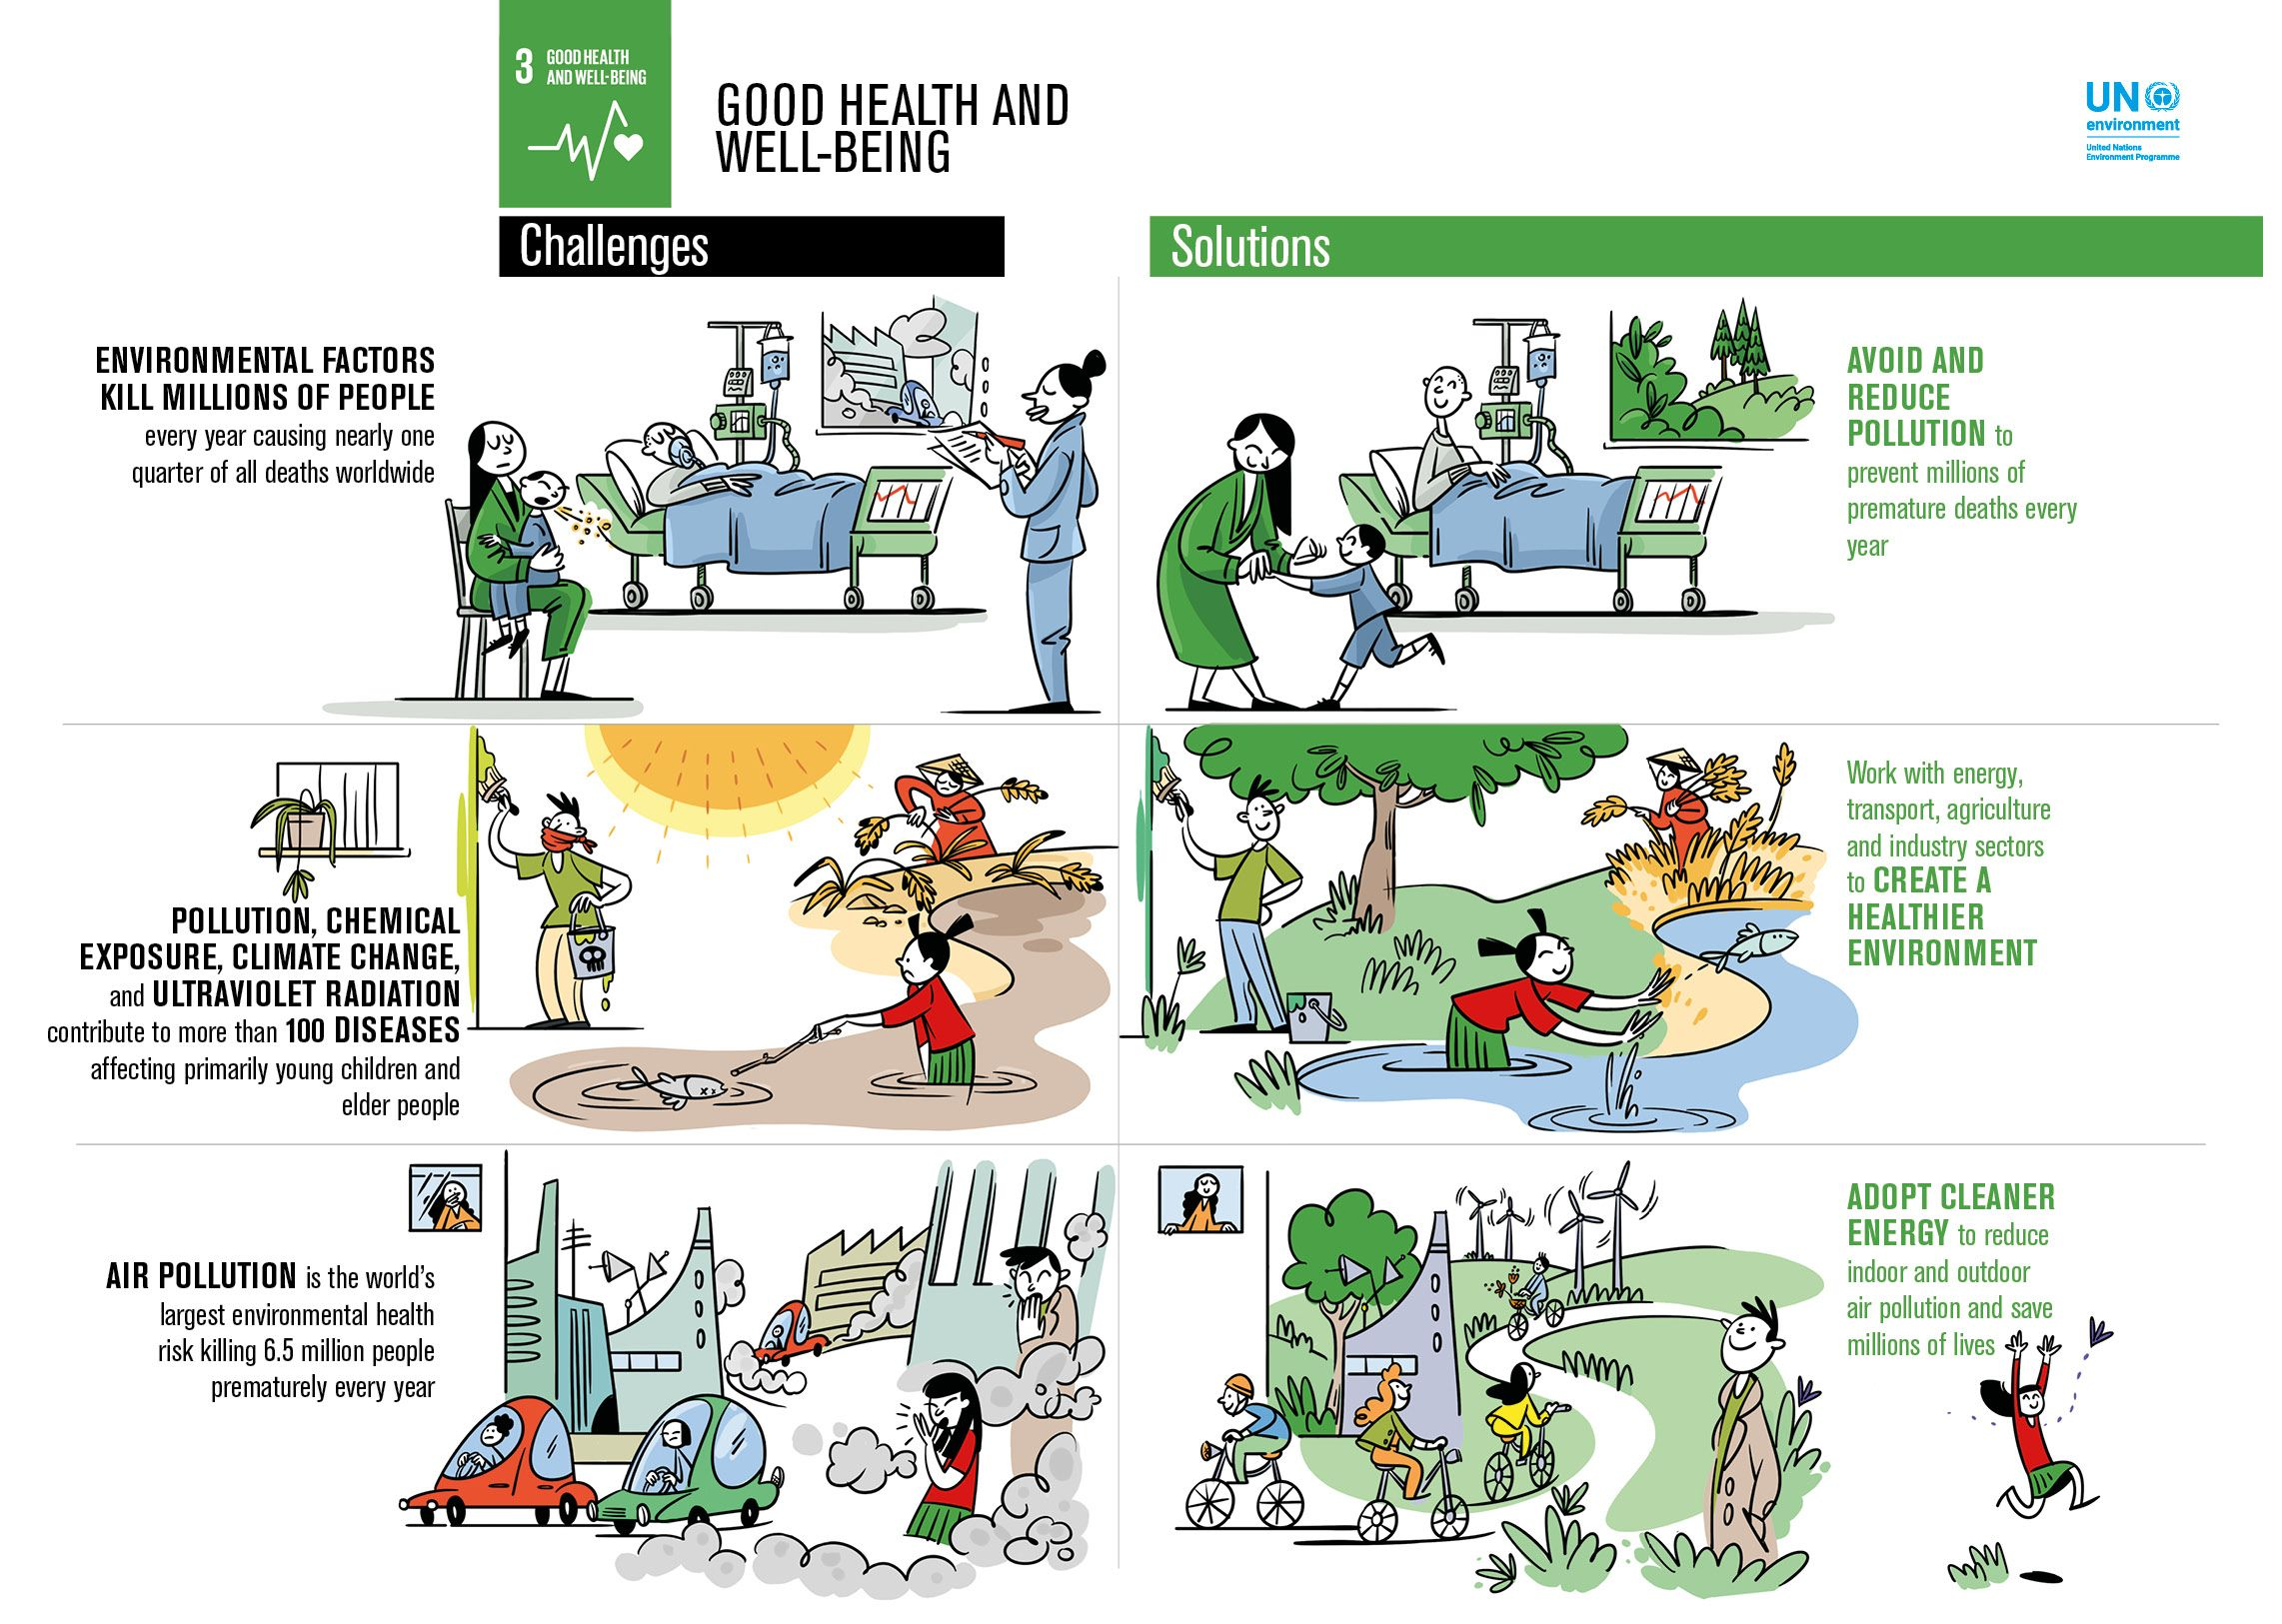 Goal cartoon Sustainable development goals, Goals, Pollution